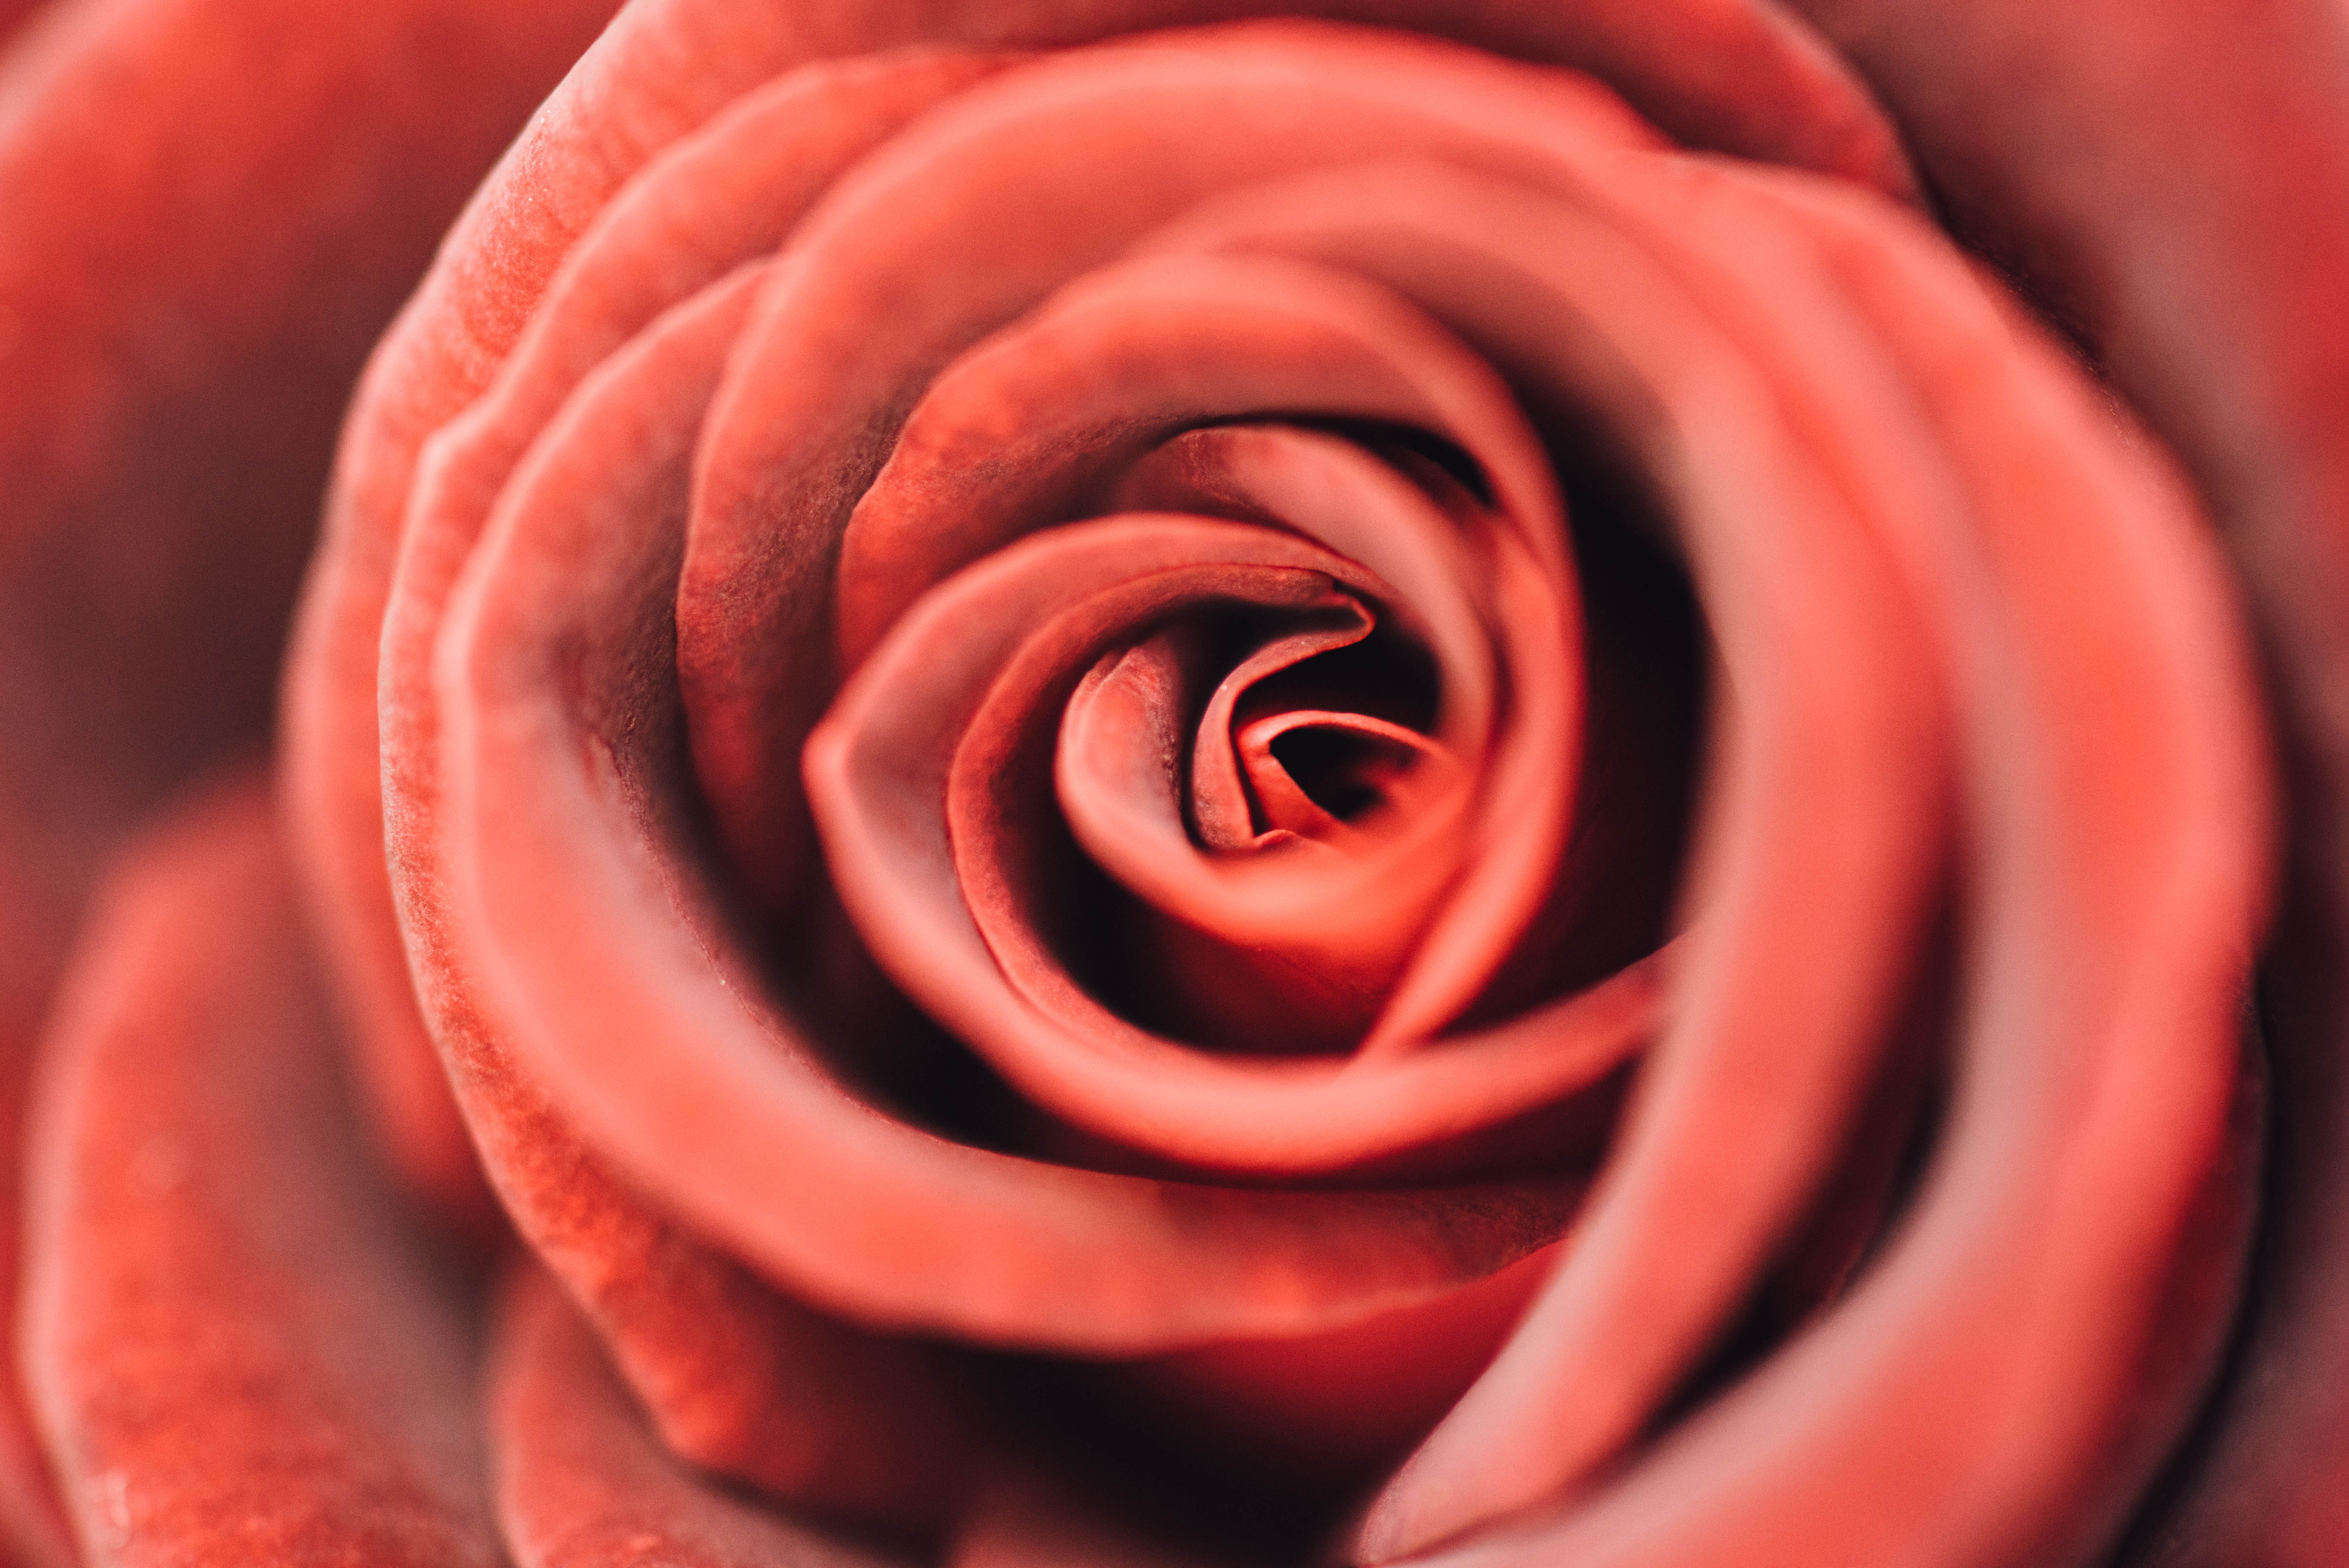 red rose flower close-up photography